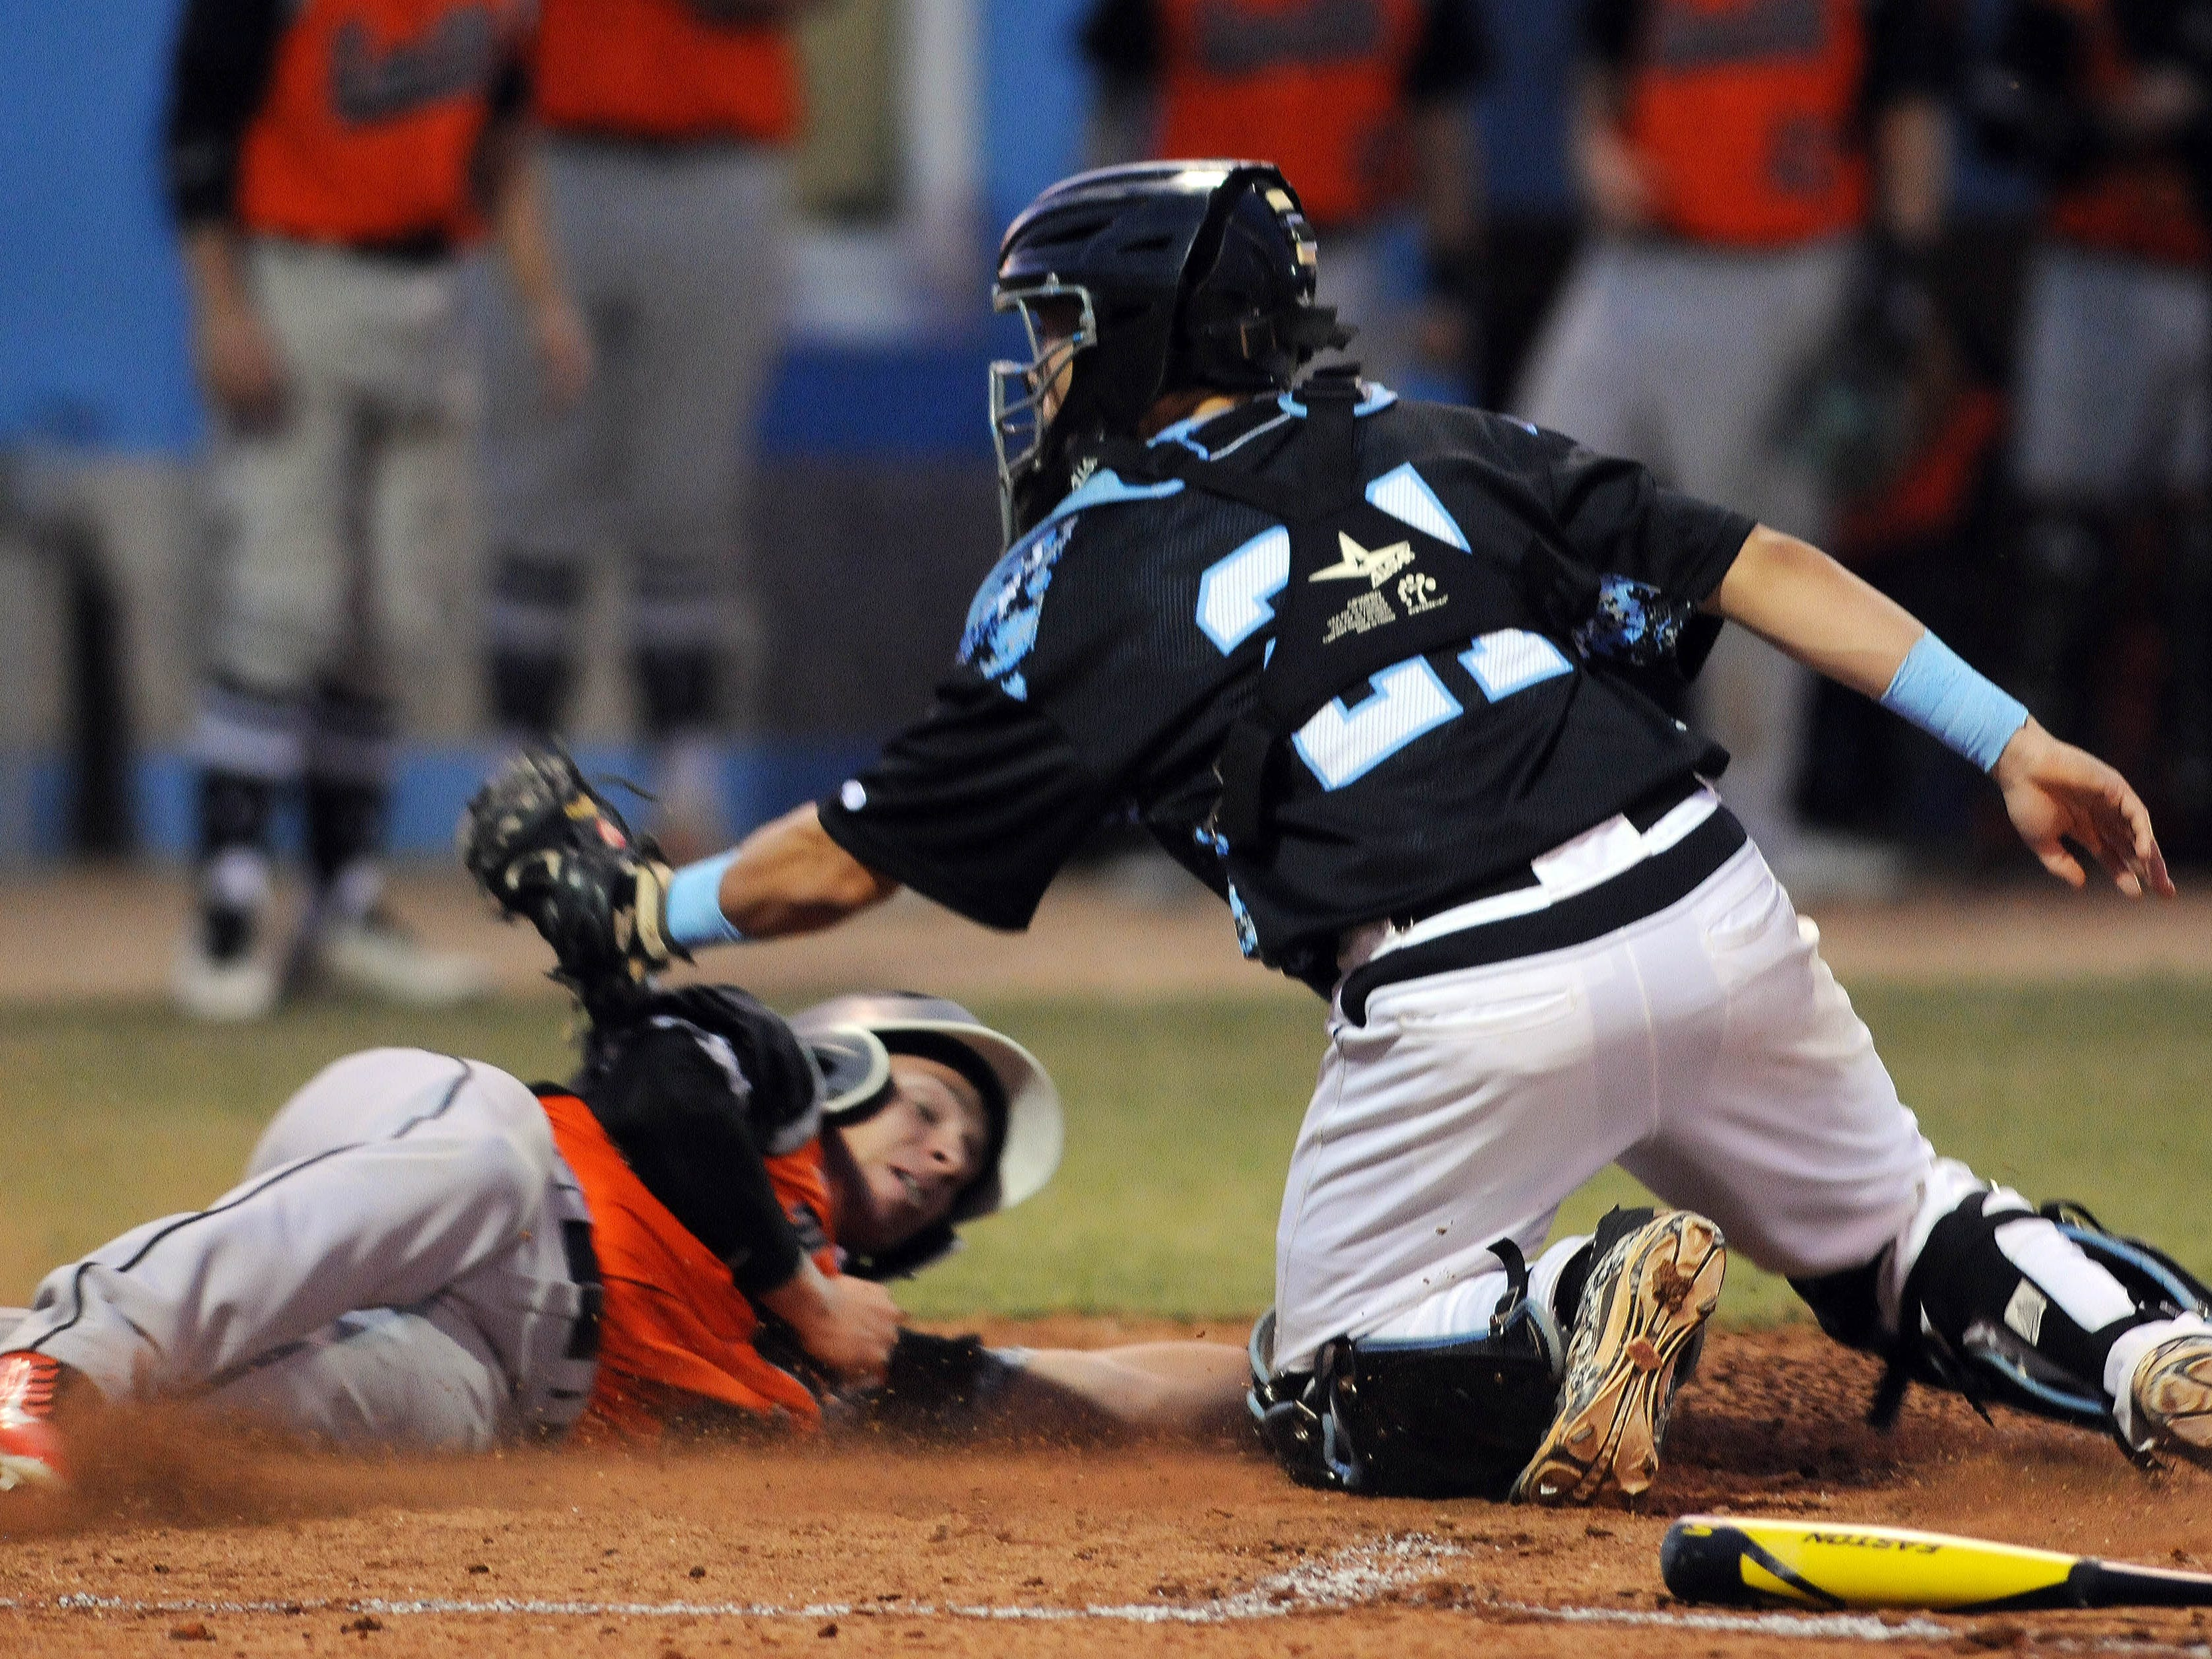 Nick Peters of Umatilla slides in under the tag of Rockledge catcher Trevor Payne (21) during Thursday's Class 5A regional quarterfinal game.